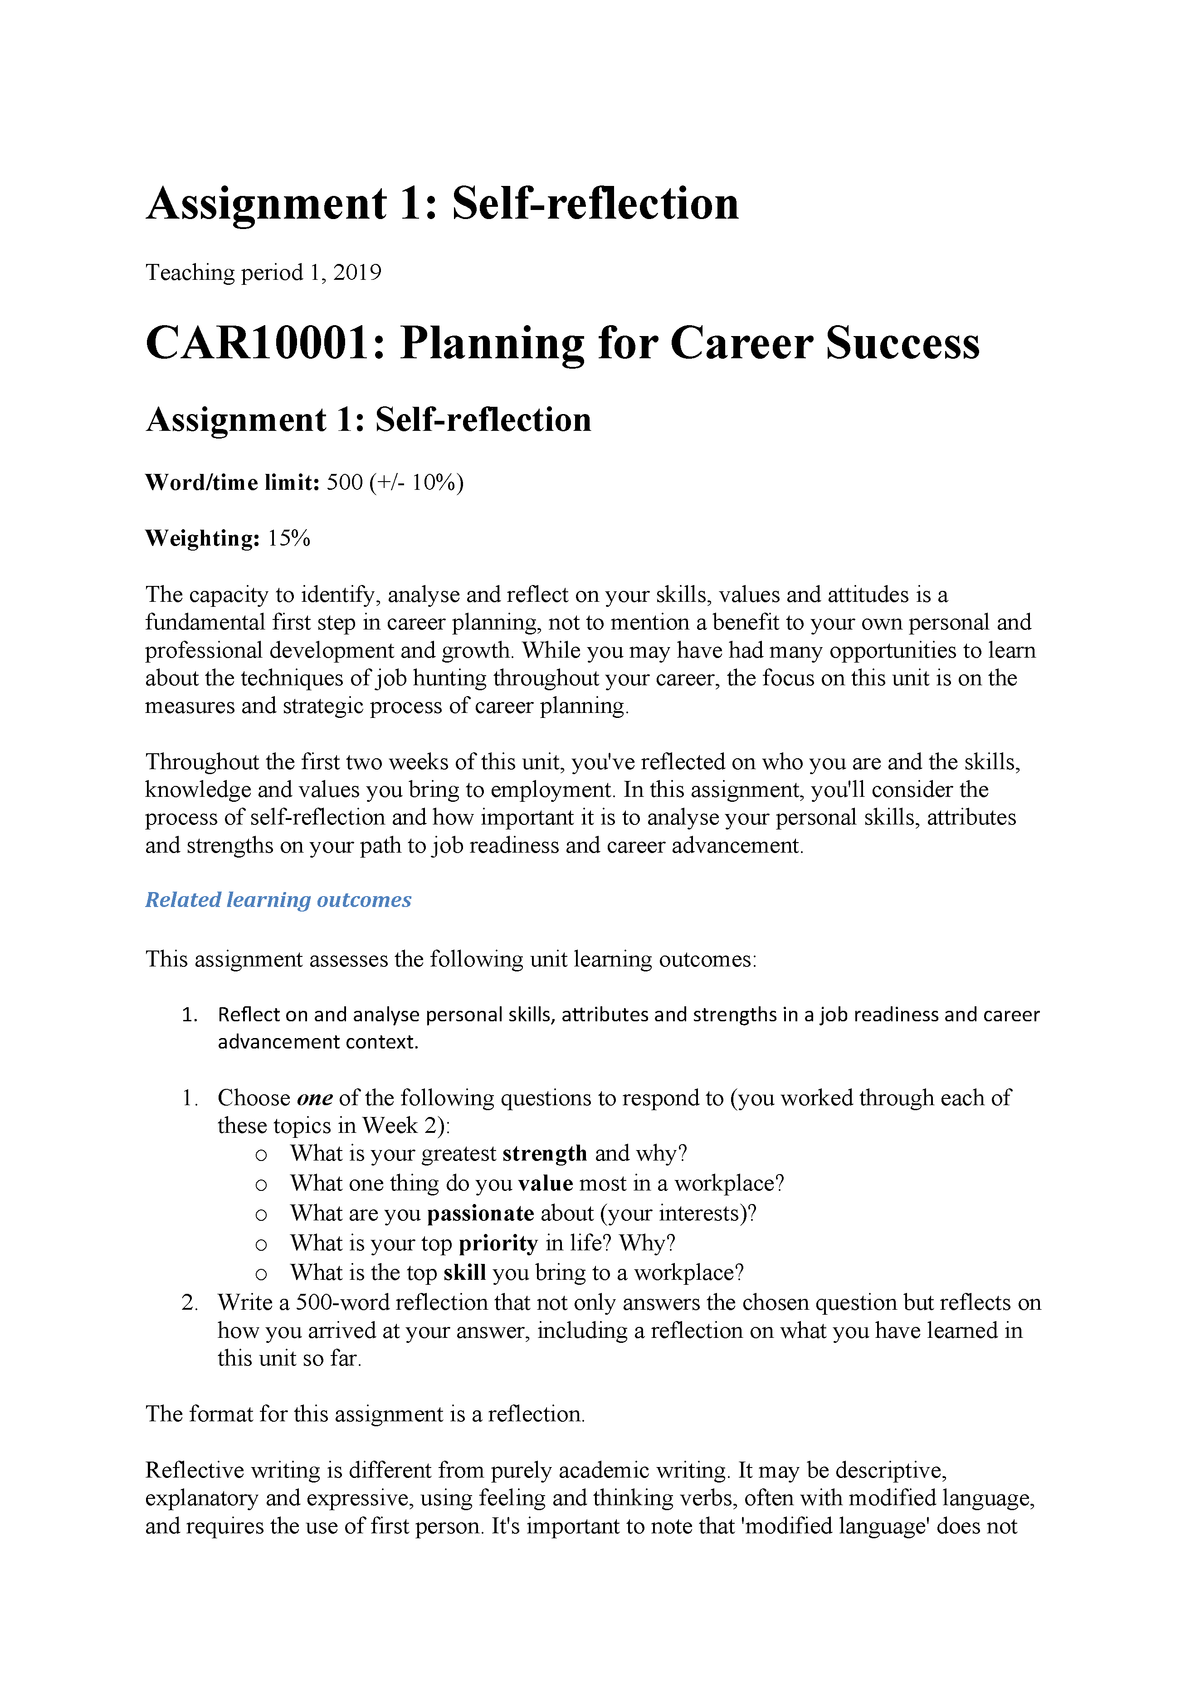 Assignment 1 details- self reflection - CAR10001: Planning for